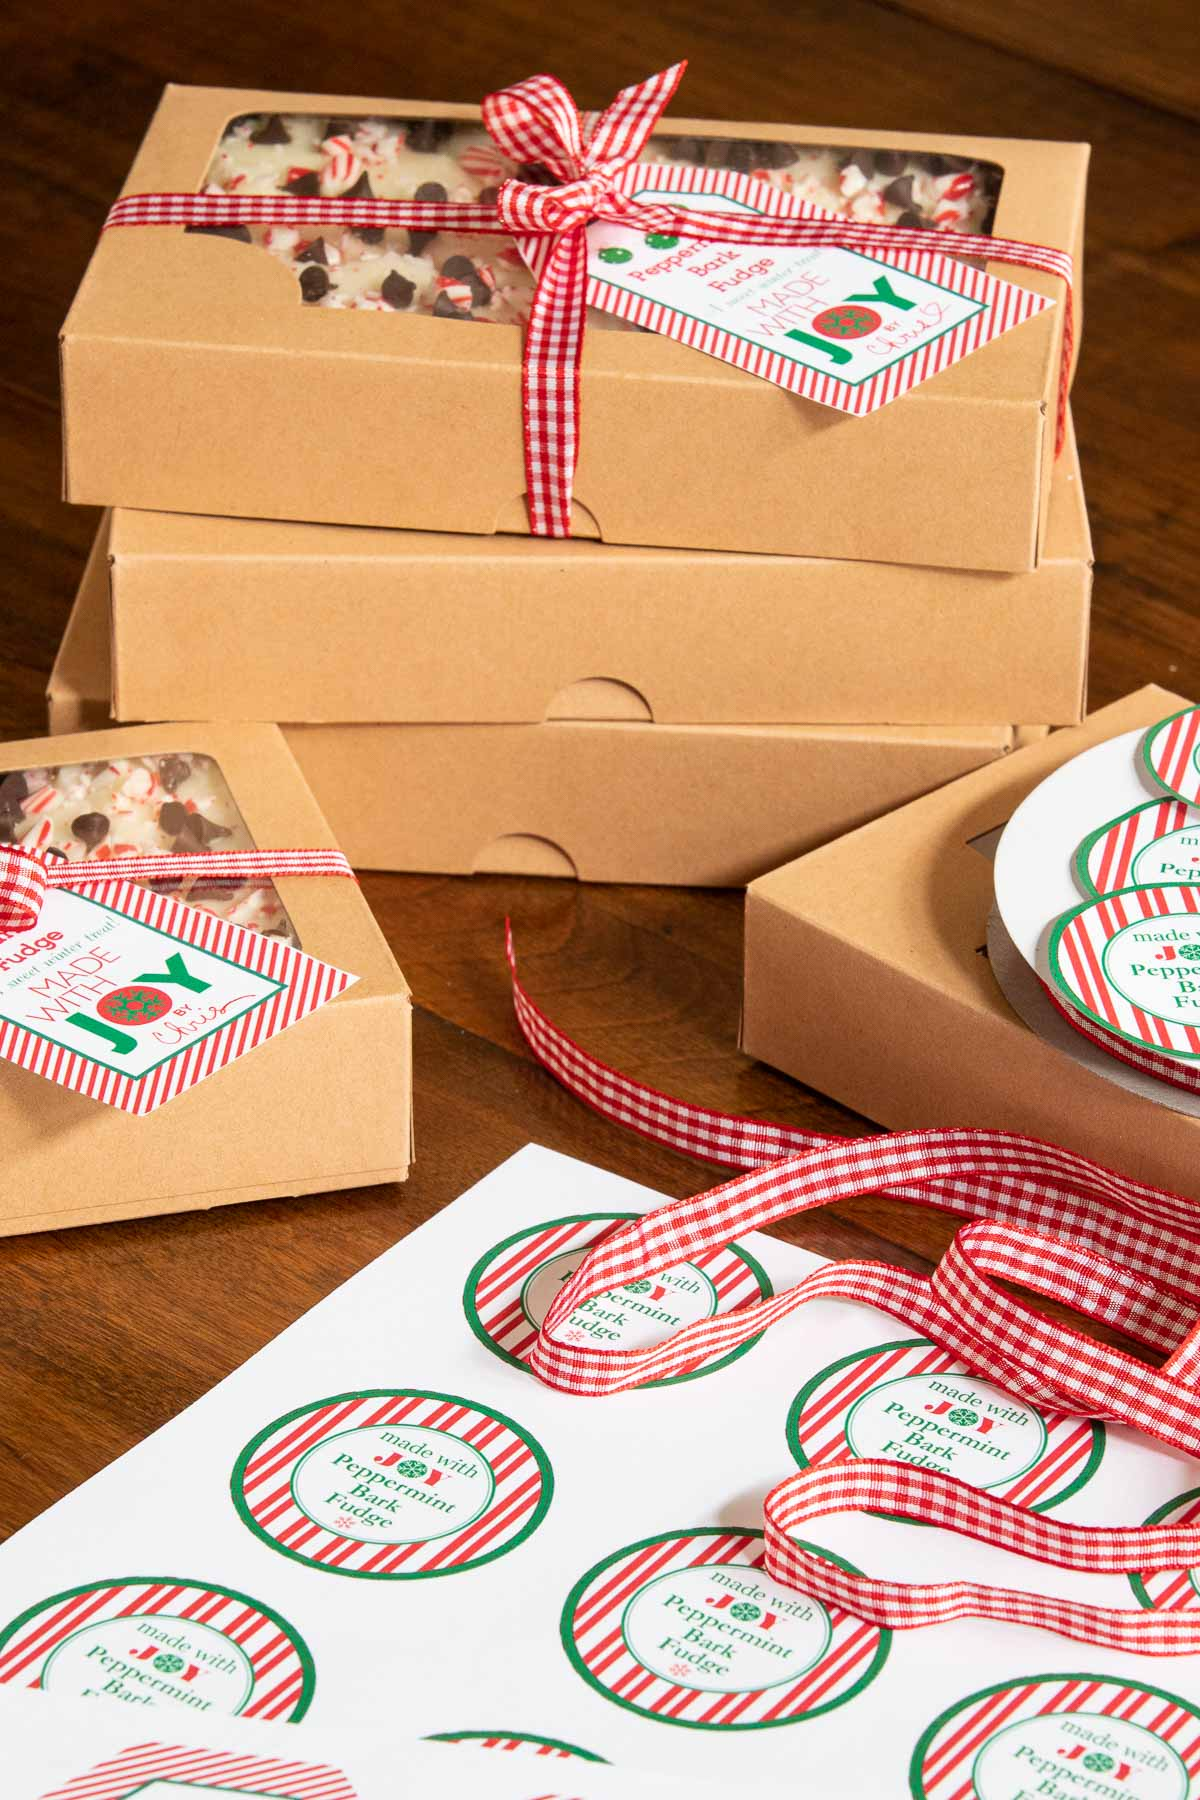 Vertical photo of boxes and gift labels for our Peppermint Bark Fudge recipe.